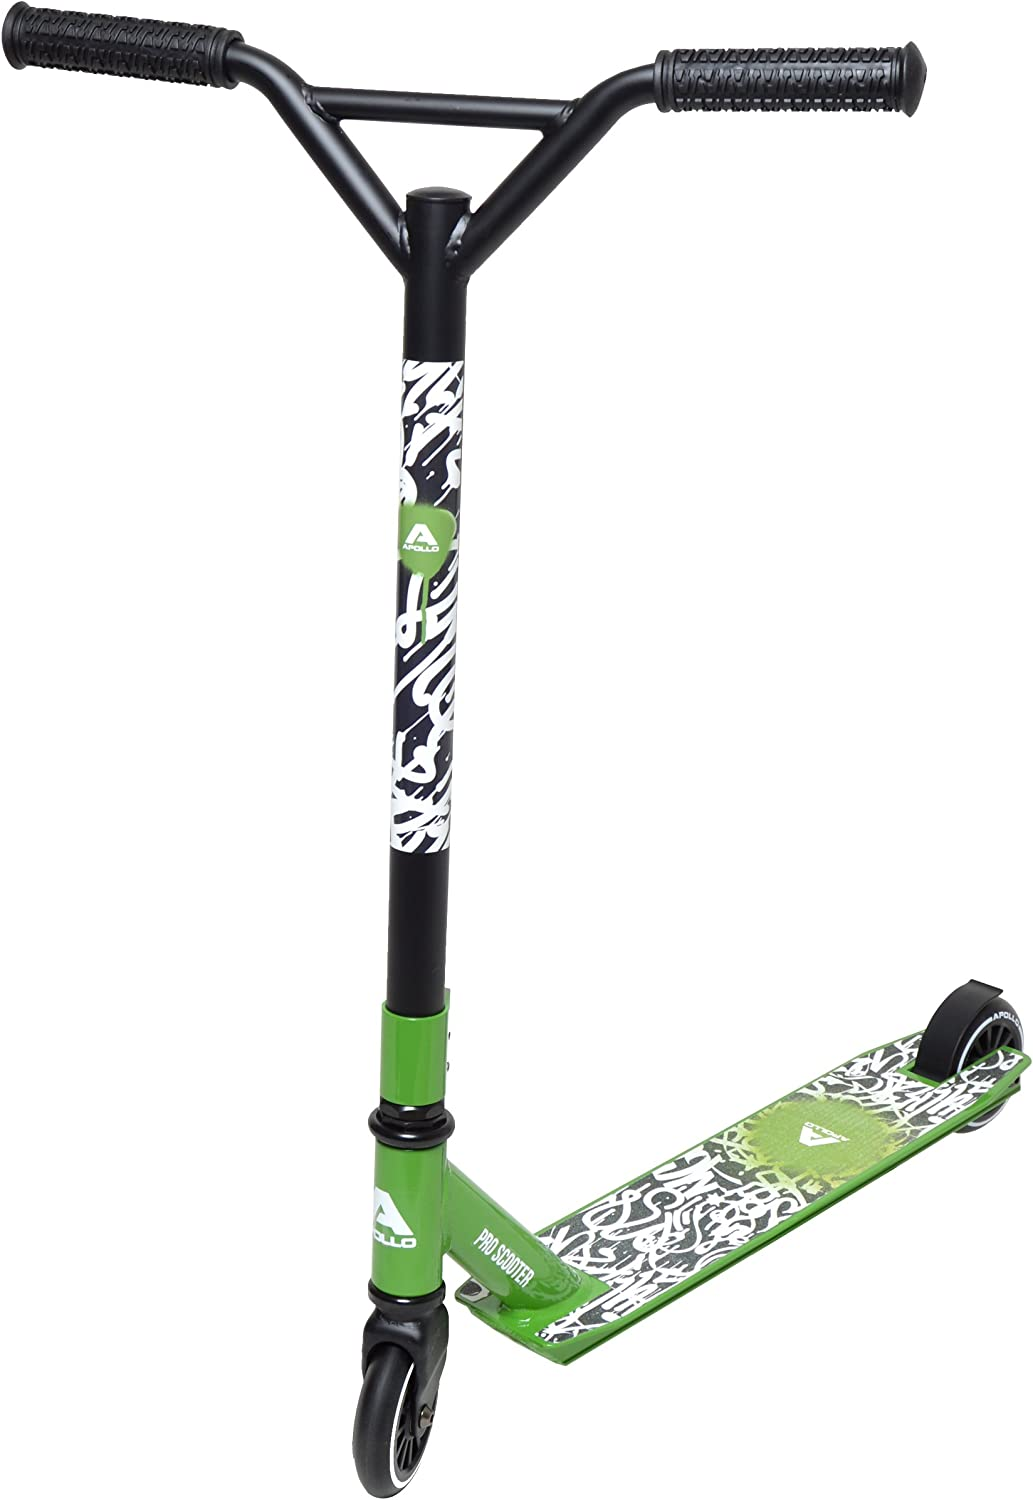 Apollo Stunt Scooter Graffiti Pro - Stunt Scooter Semi Pro robustos con rodamientos ABEC 9, Fun Scooter, Kick Scooter, Trick Scooter, Freestyle Scooter